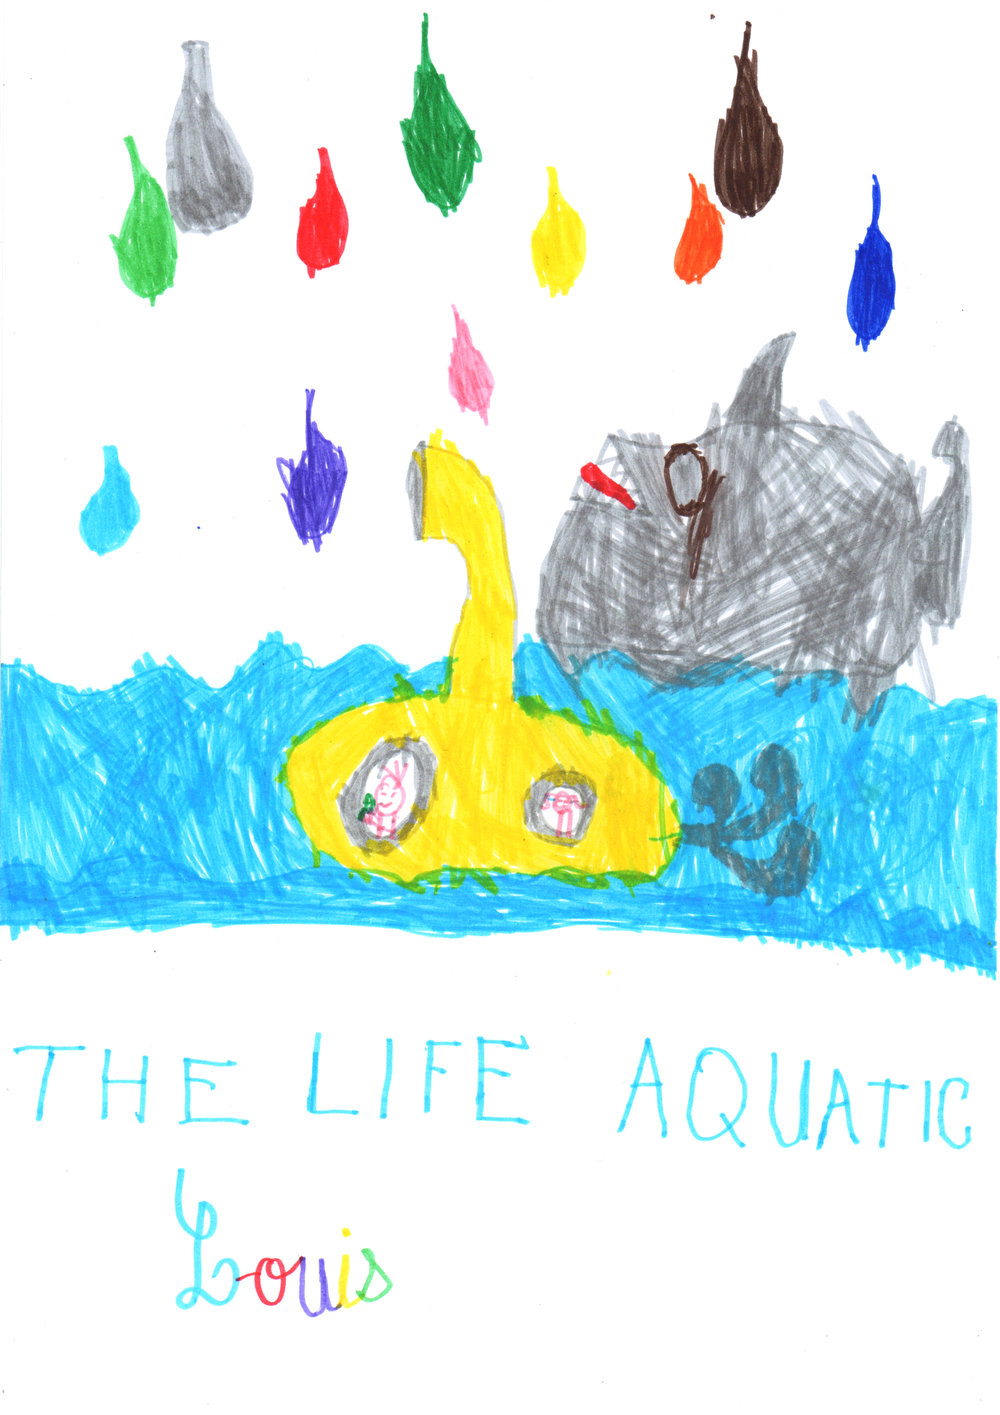 LOUIS-THELIFEAQUATIC.jpg